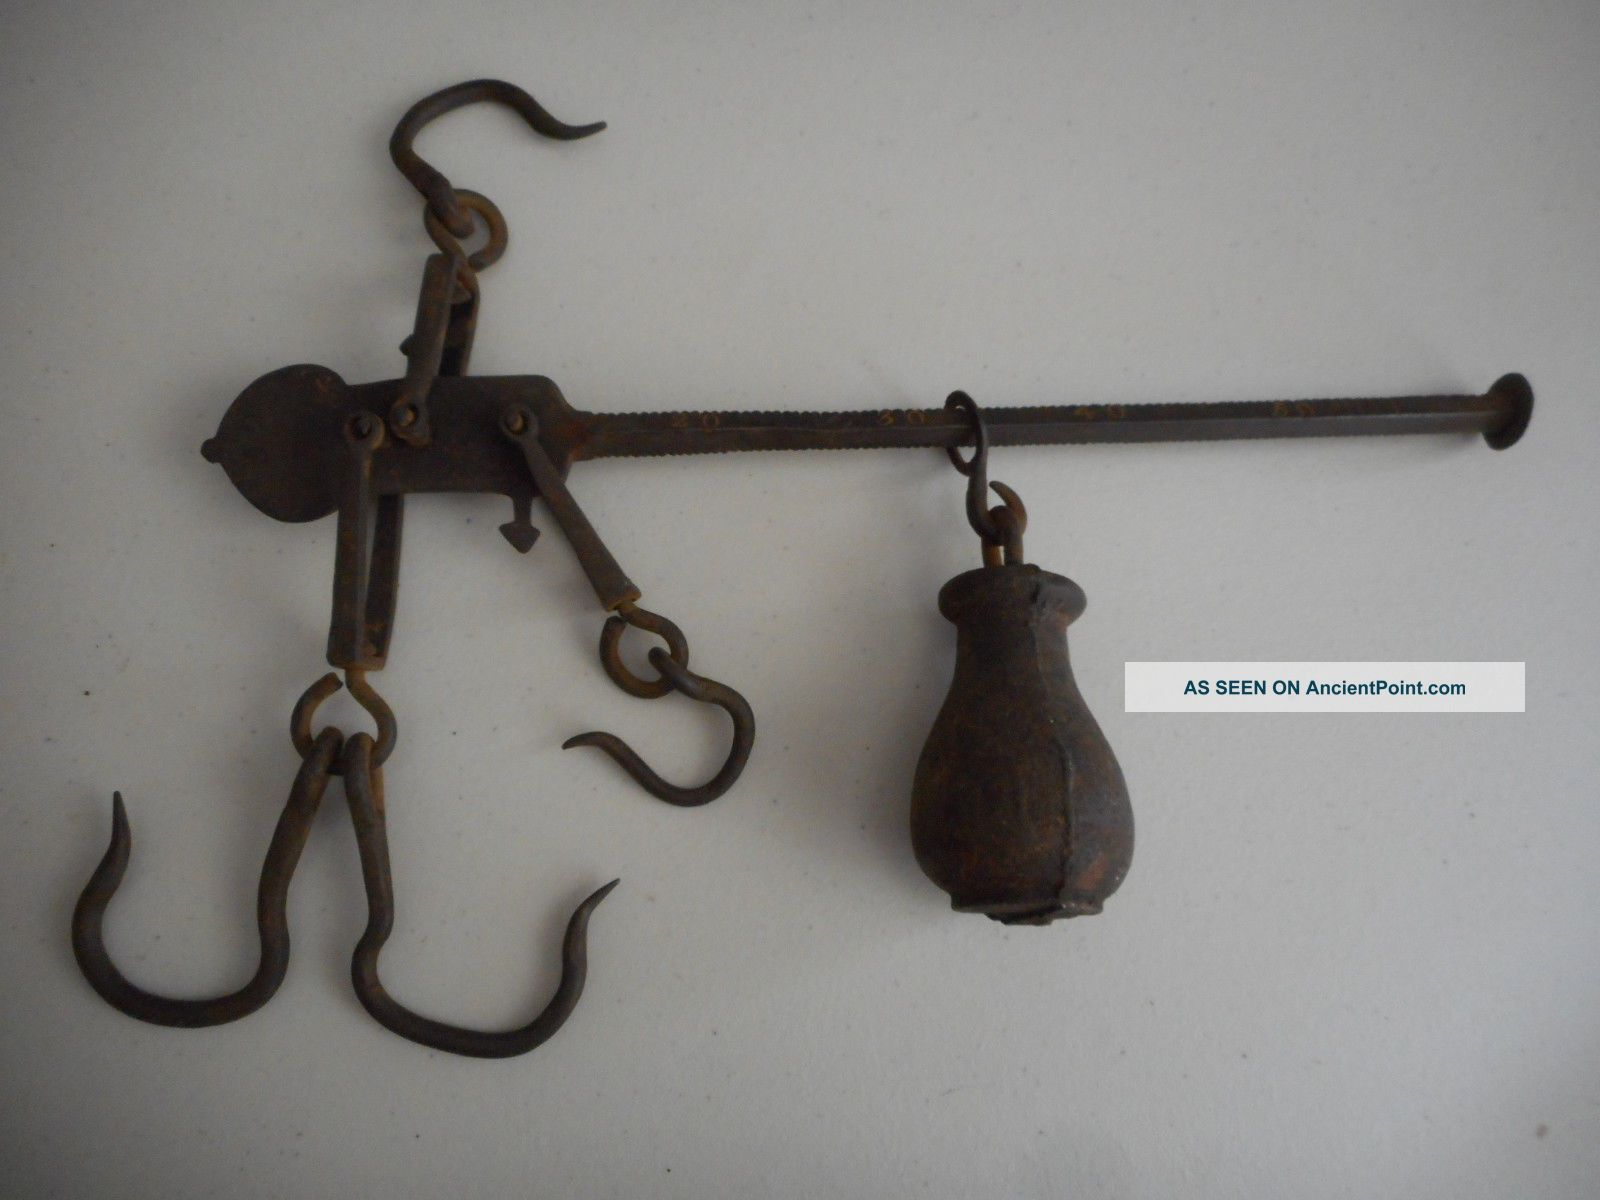 Antique Metal Cast Iron Scale Parts Balance Arm Weight Hardware Old Vintage Scales photo